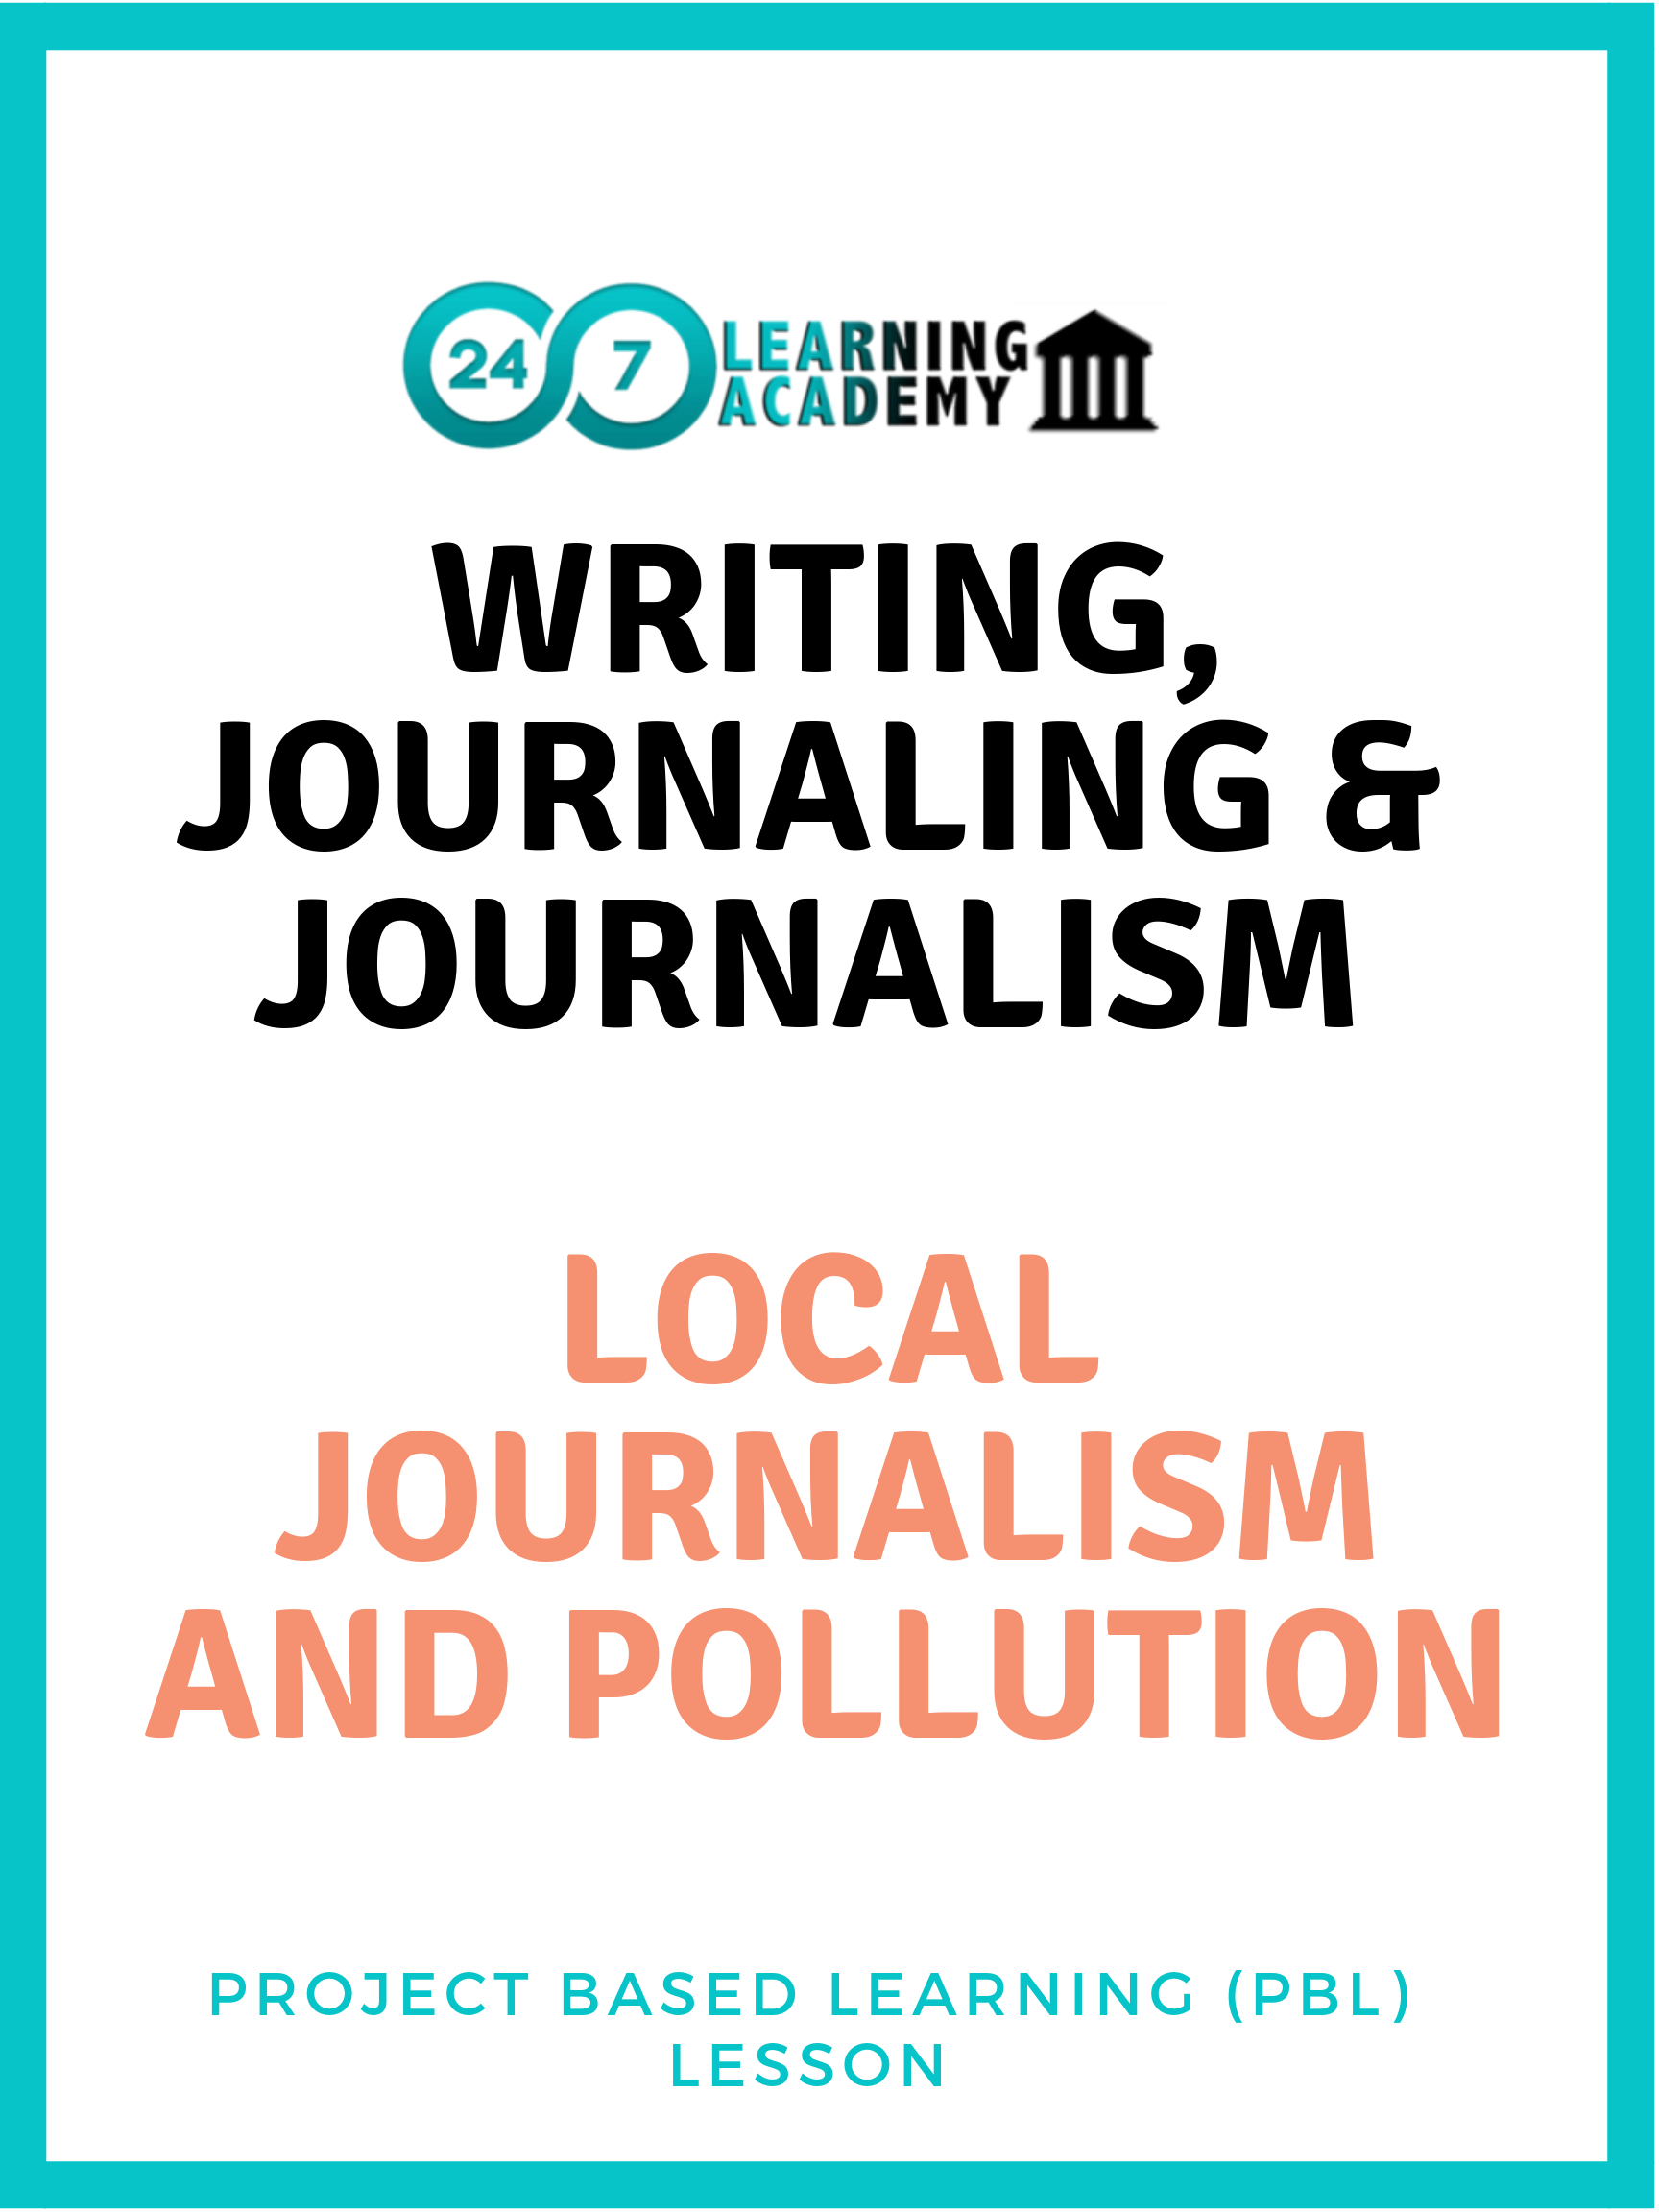 Writing Journalism and Pollution - Lesson